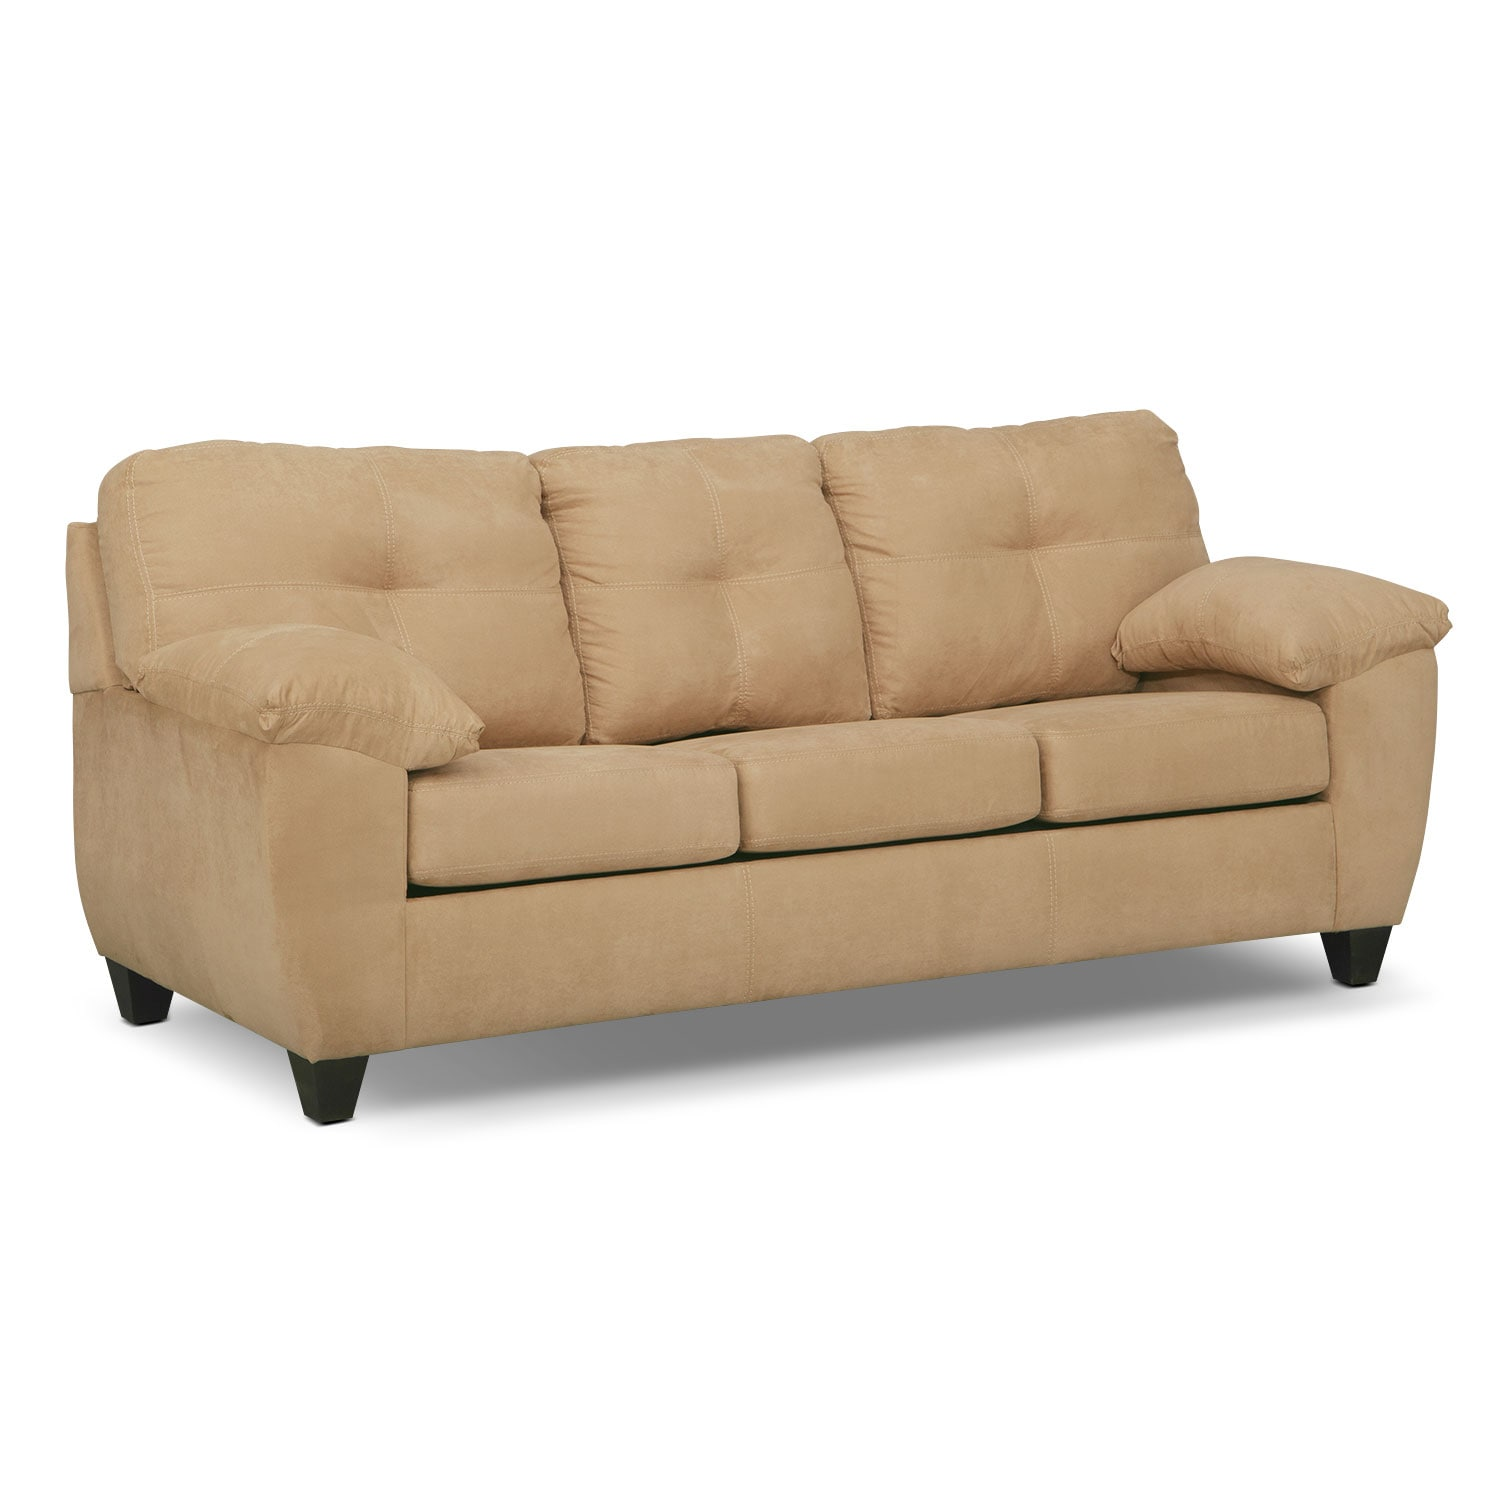 Living Room Furniture - Rialto Queen Memory Foam Sleeper Sofa - Camel